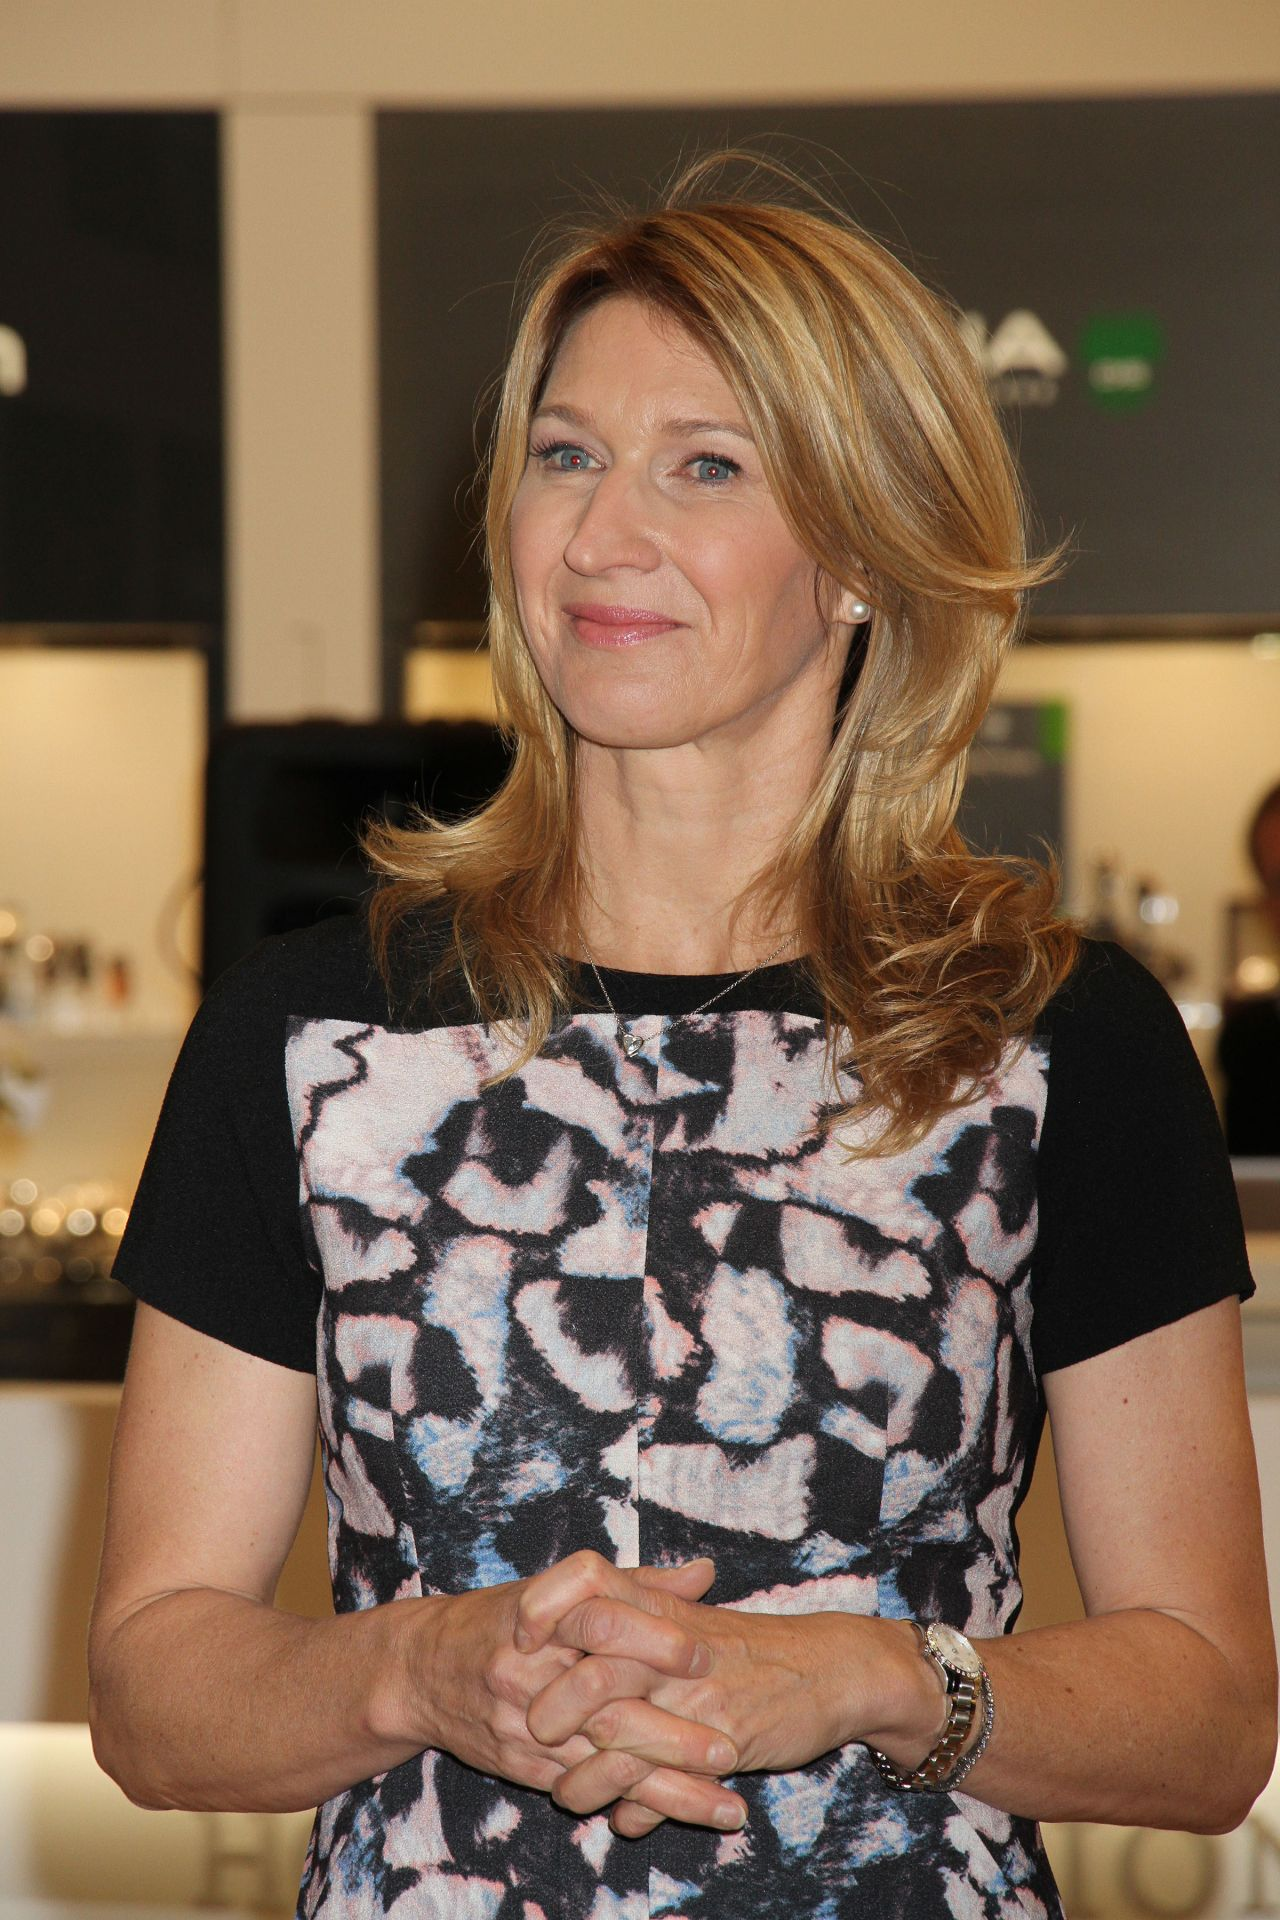 Steffi Graf Hour Passion Boutique opening at Aria Resort